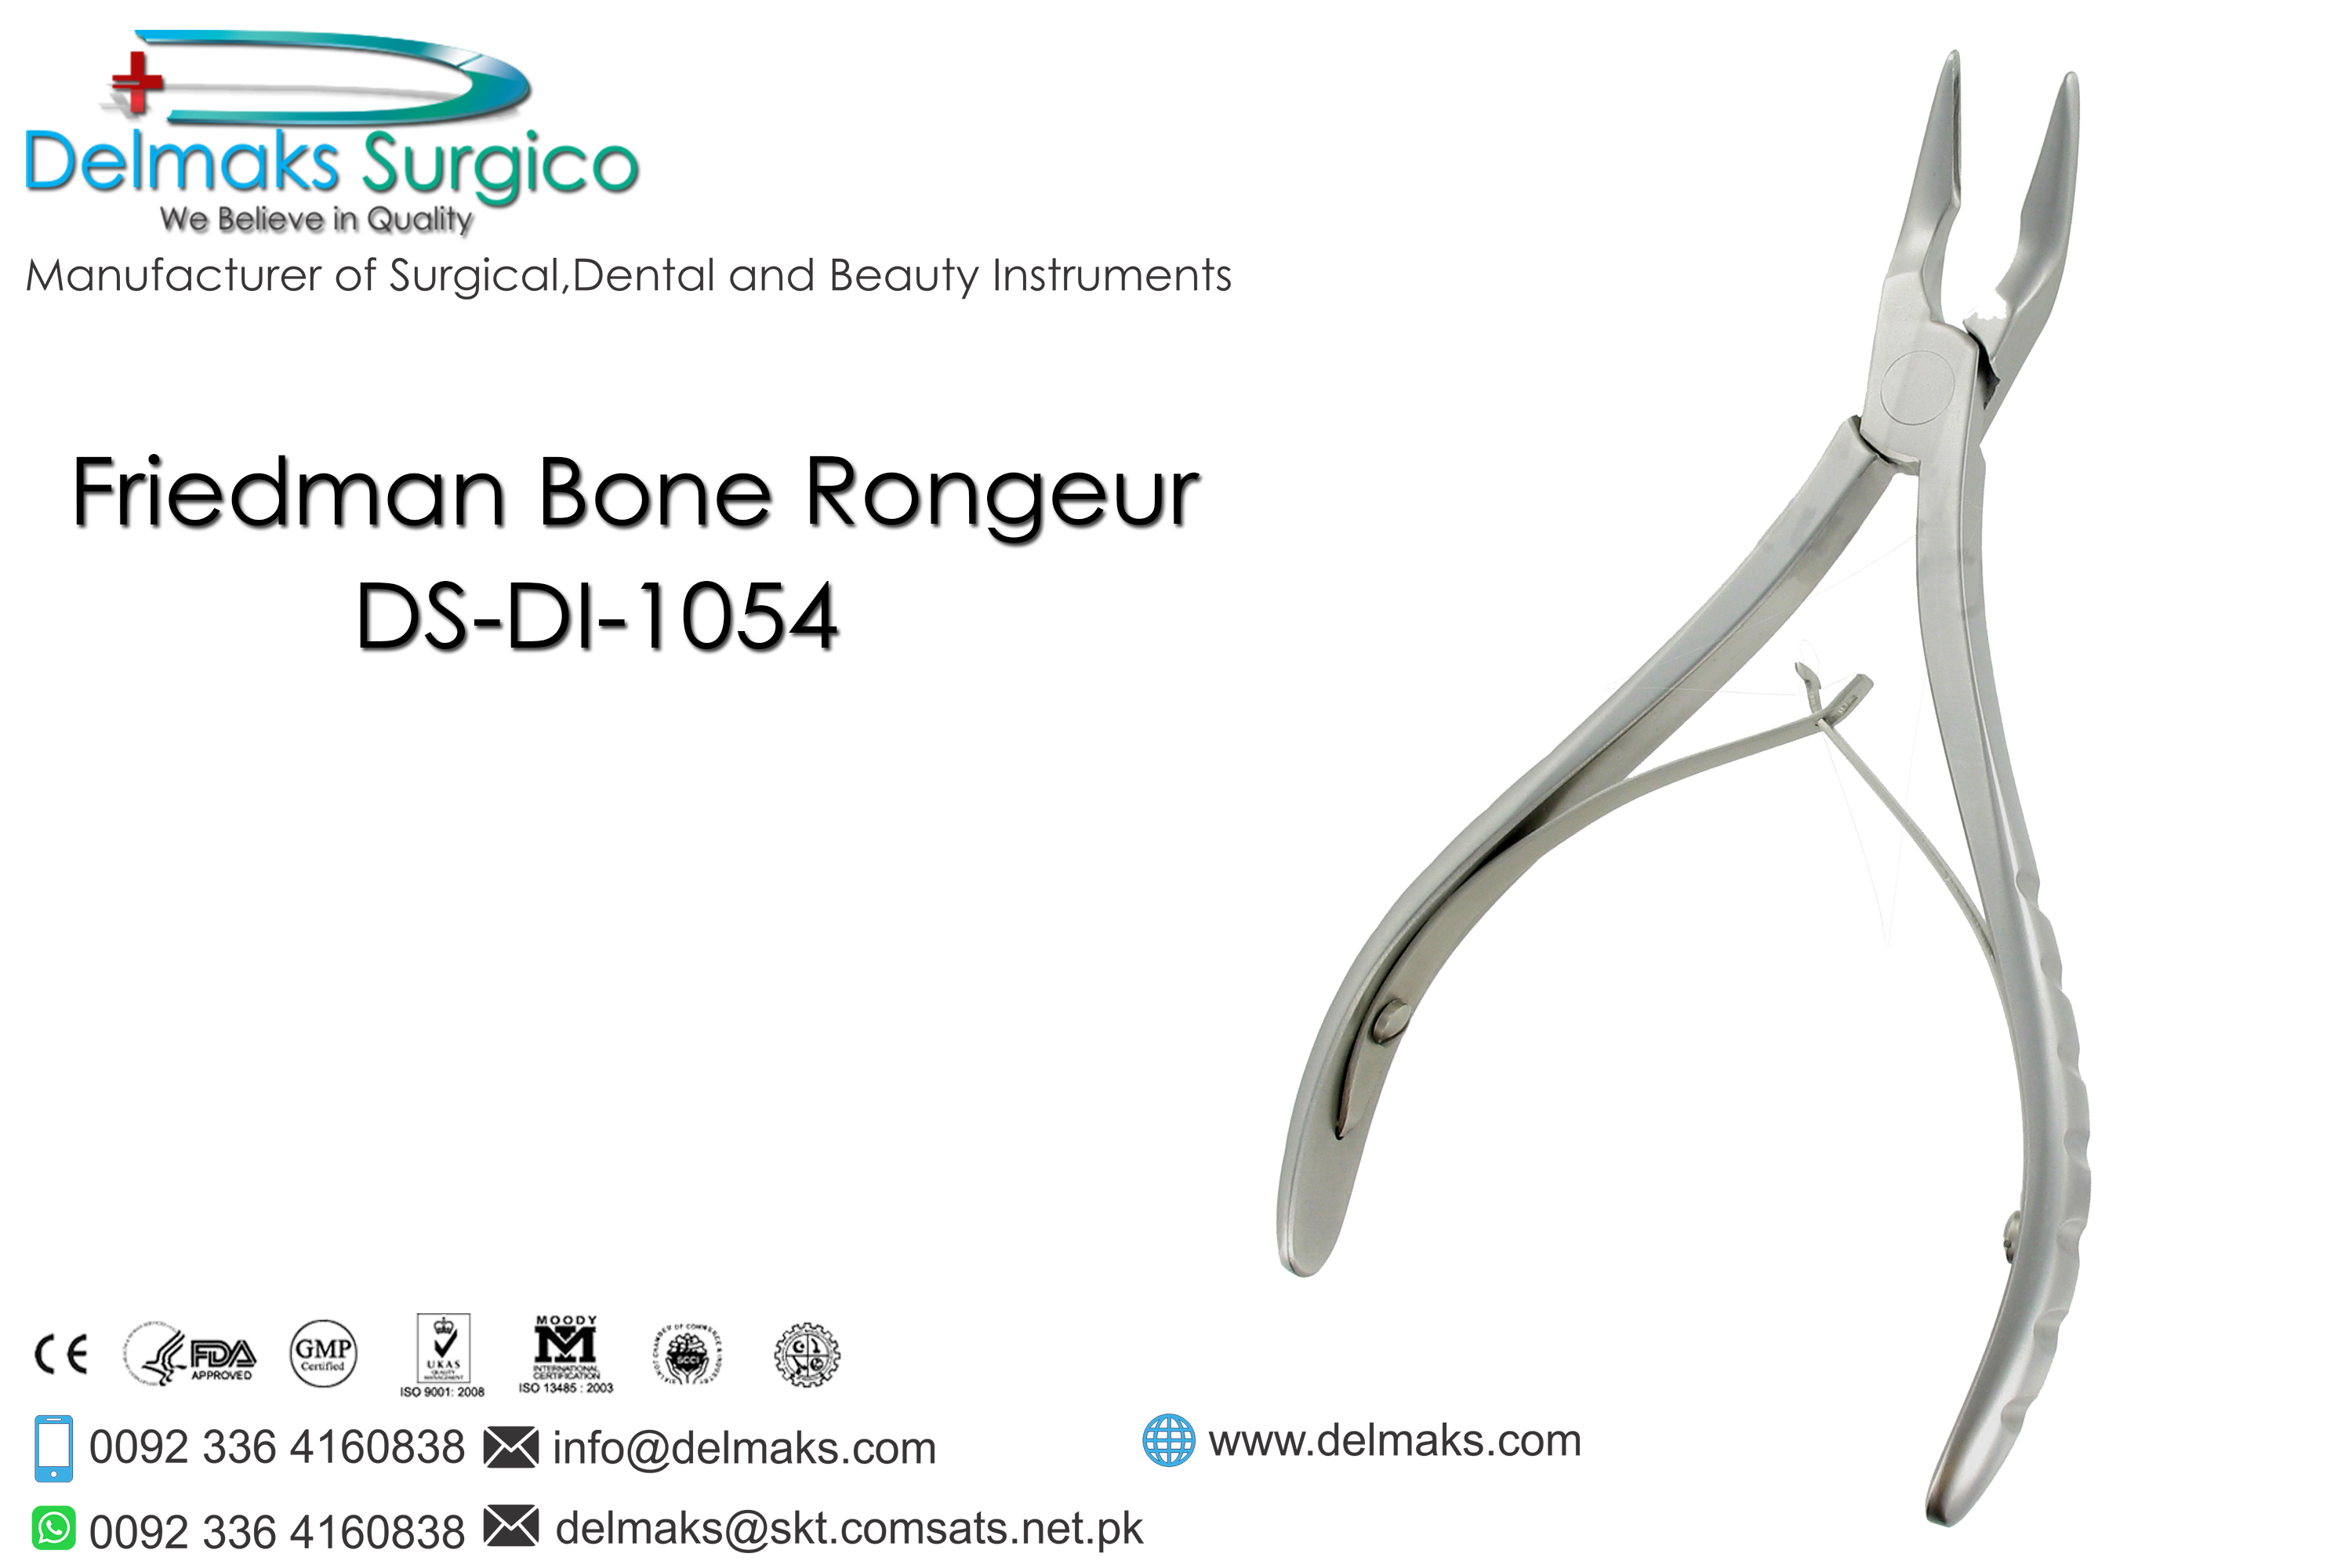 Friedman Bone Rongeur-Bone Rongeurs-Dental Instruments-Delmaks Surgico